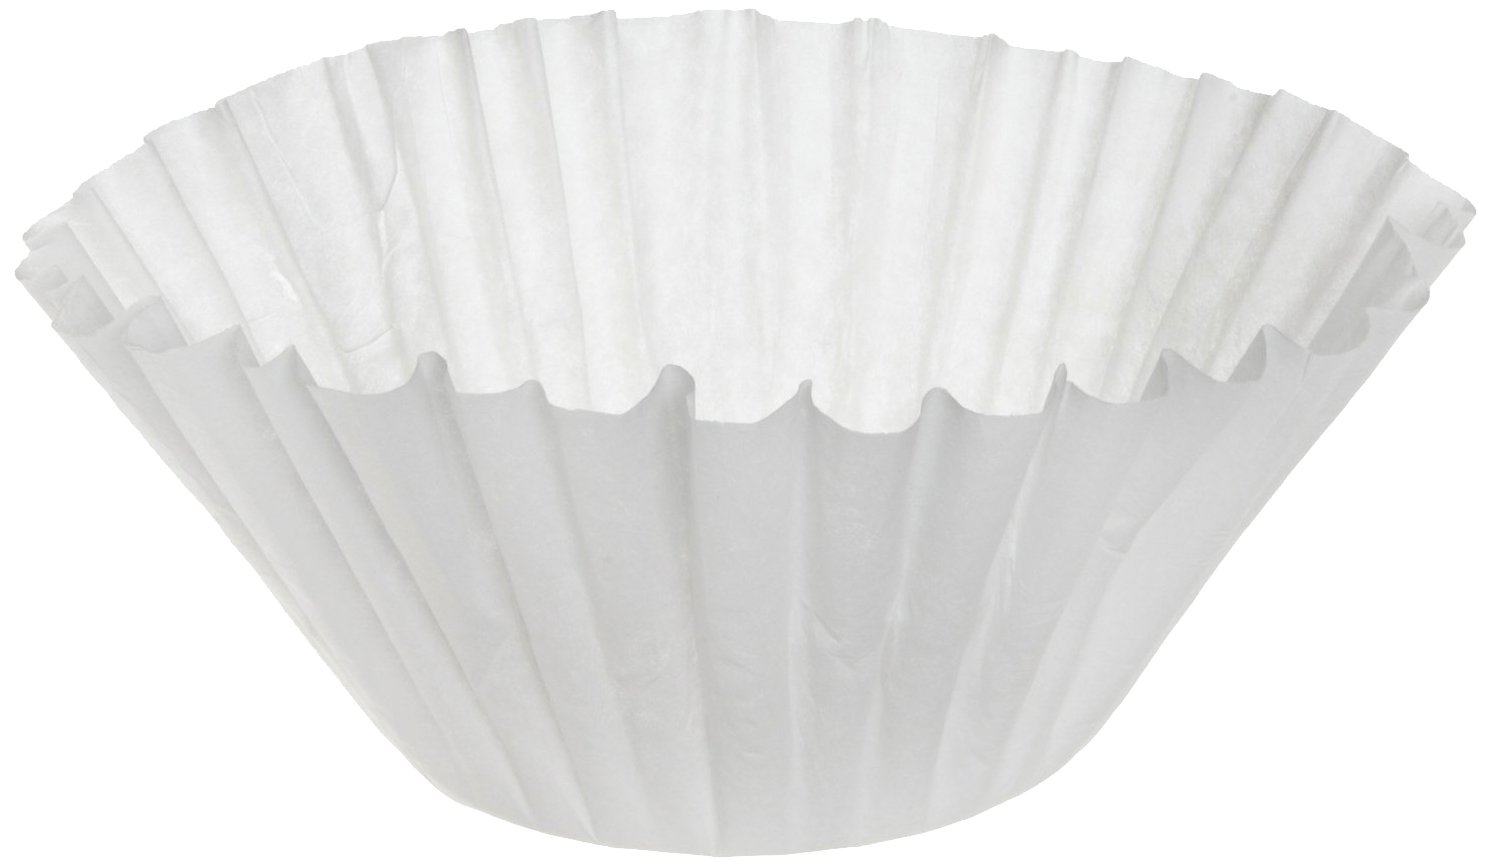 BUNN 1M5002 Commercial Coffee Filters, 12-Cup Size (Case of 1000) by Bunn (Image #2)